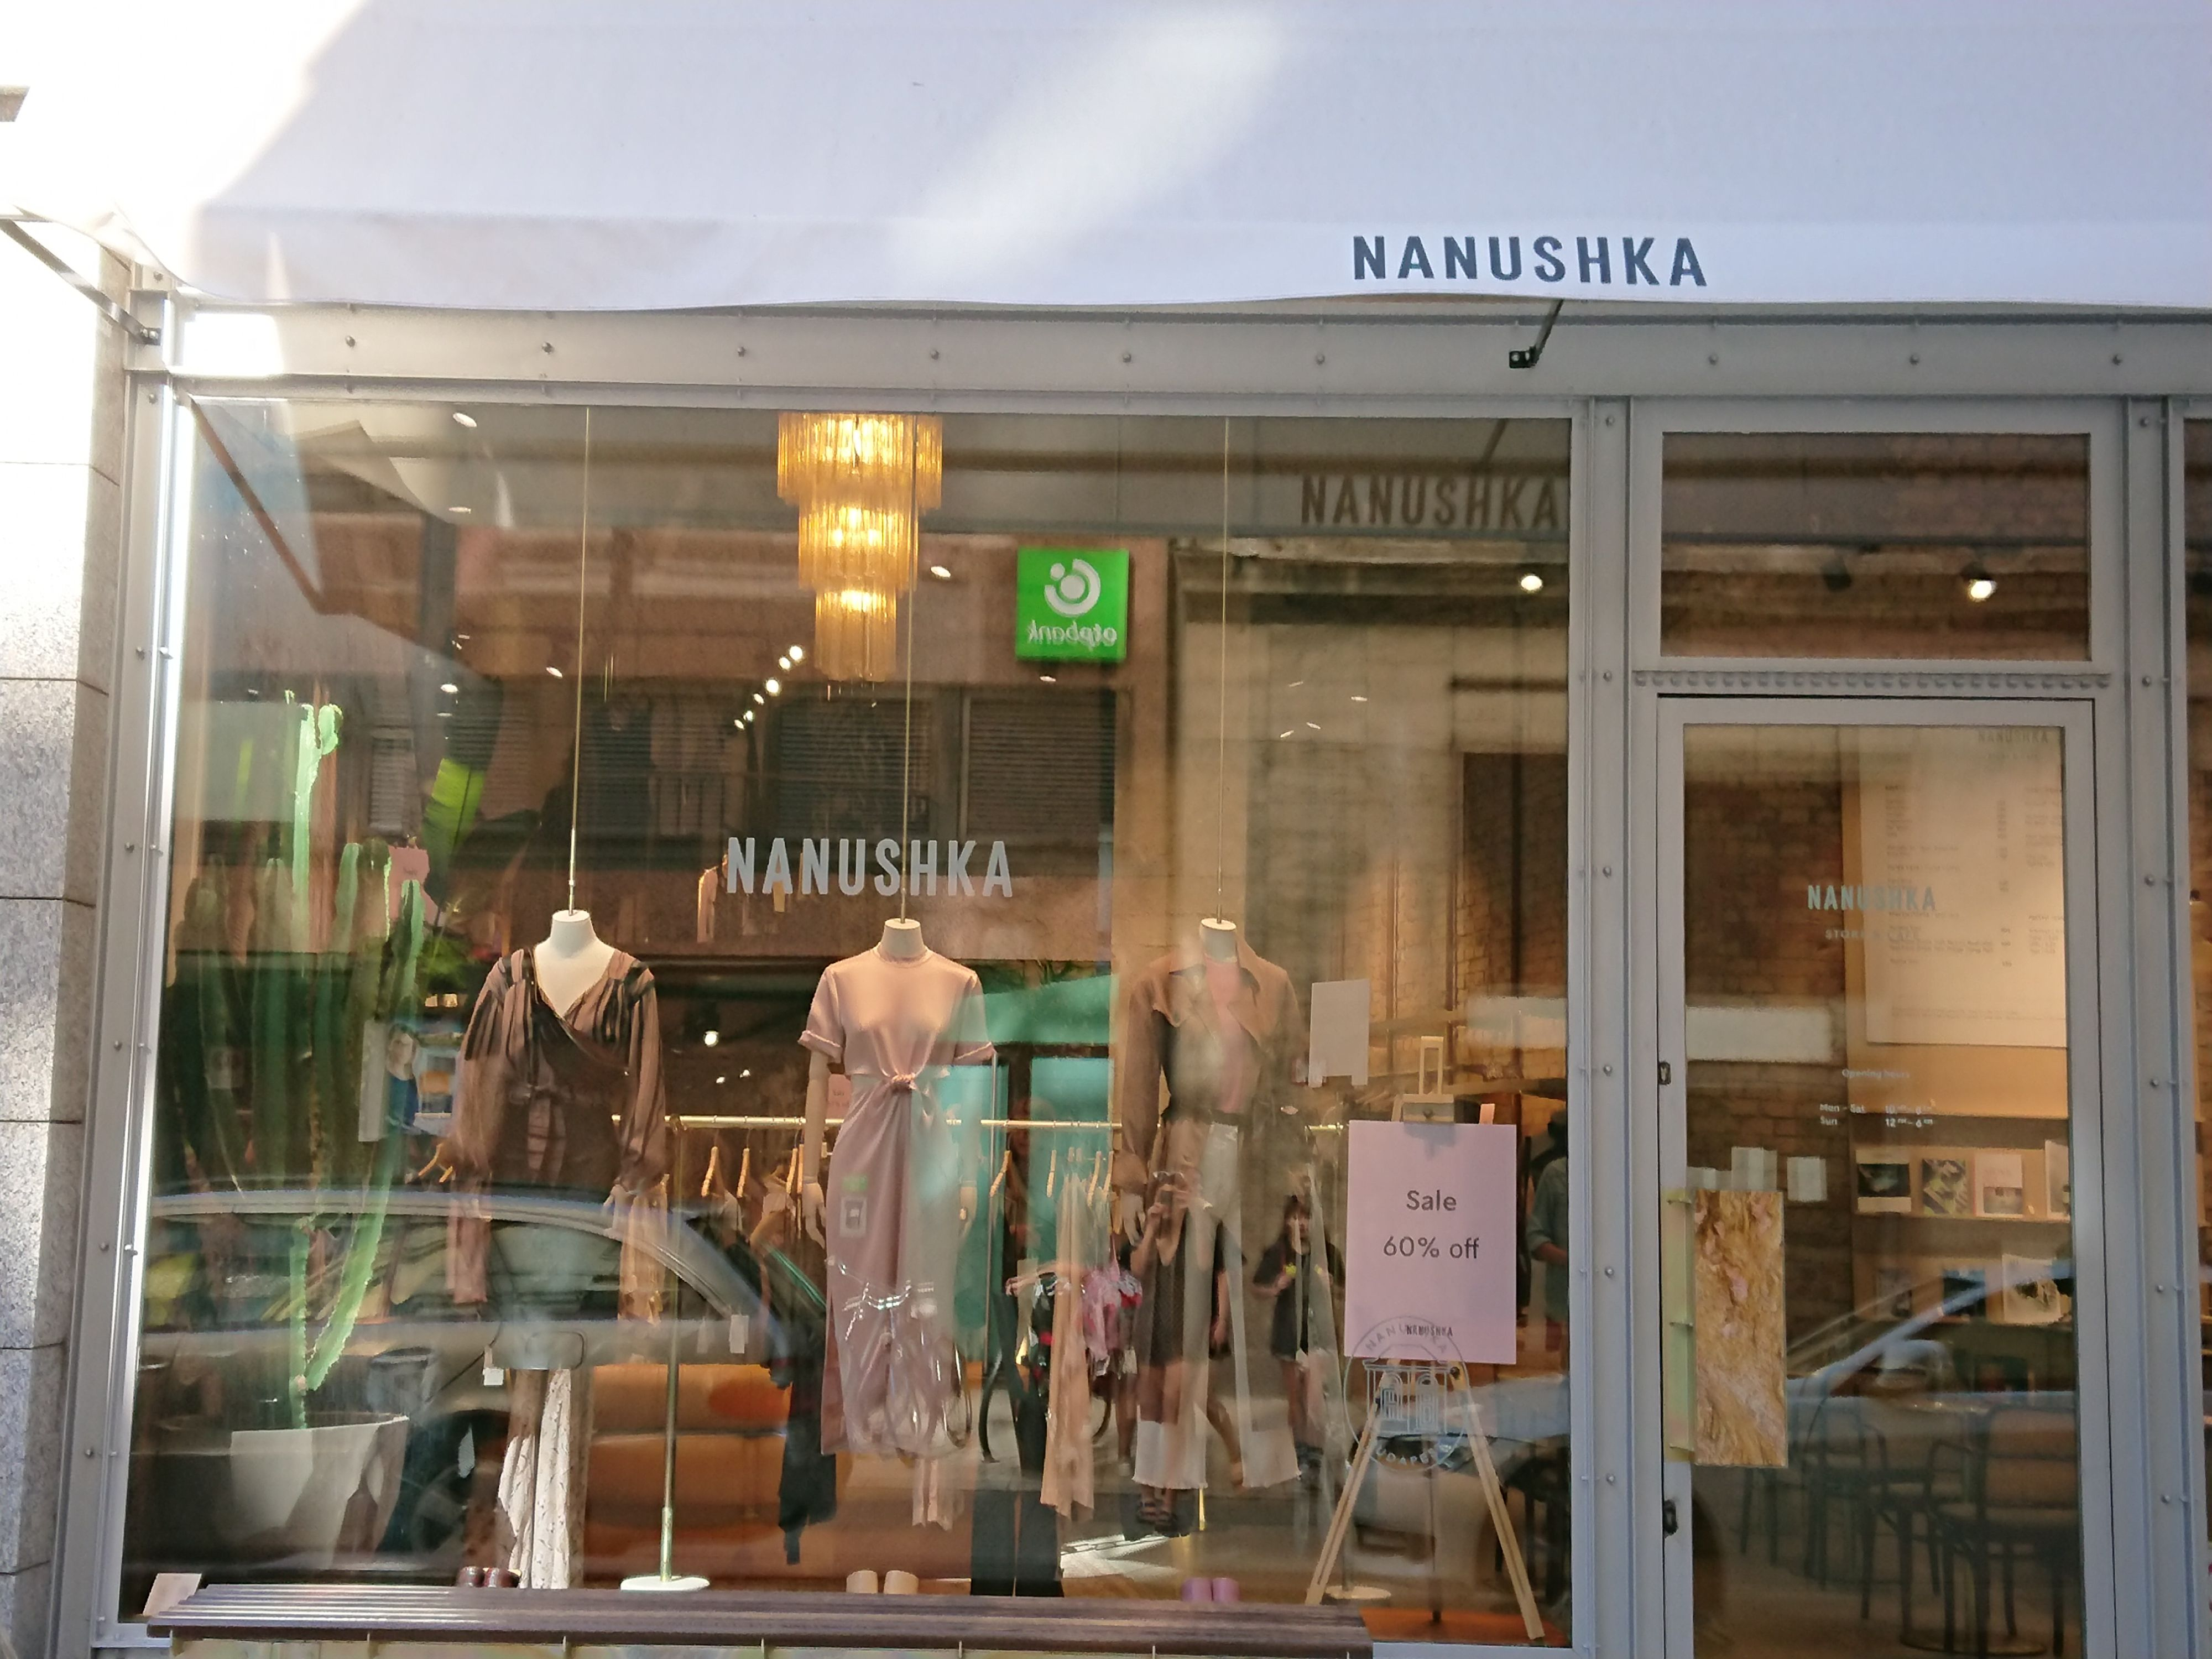 Nanushka Store and Cafe